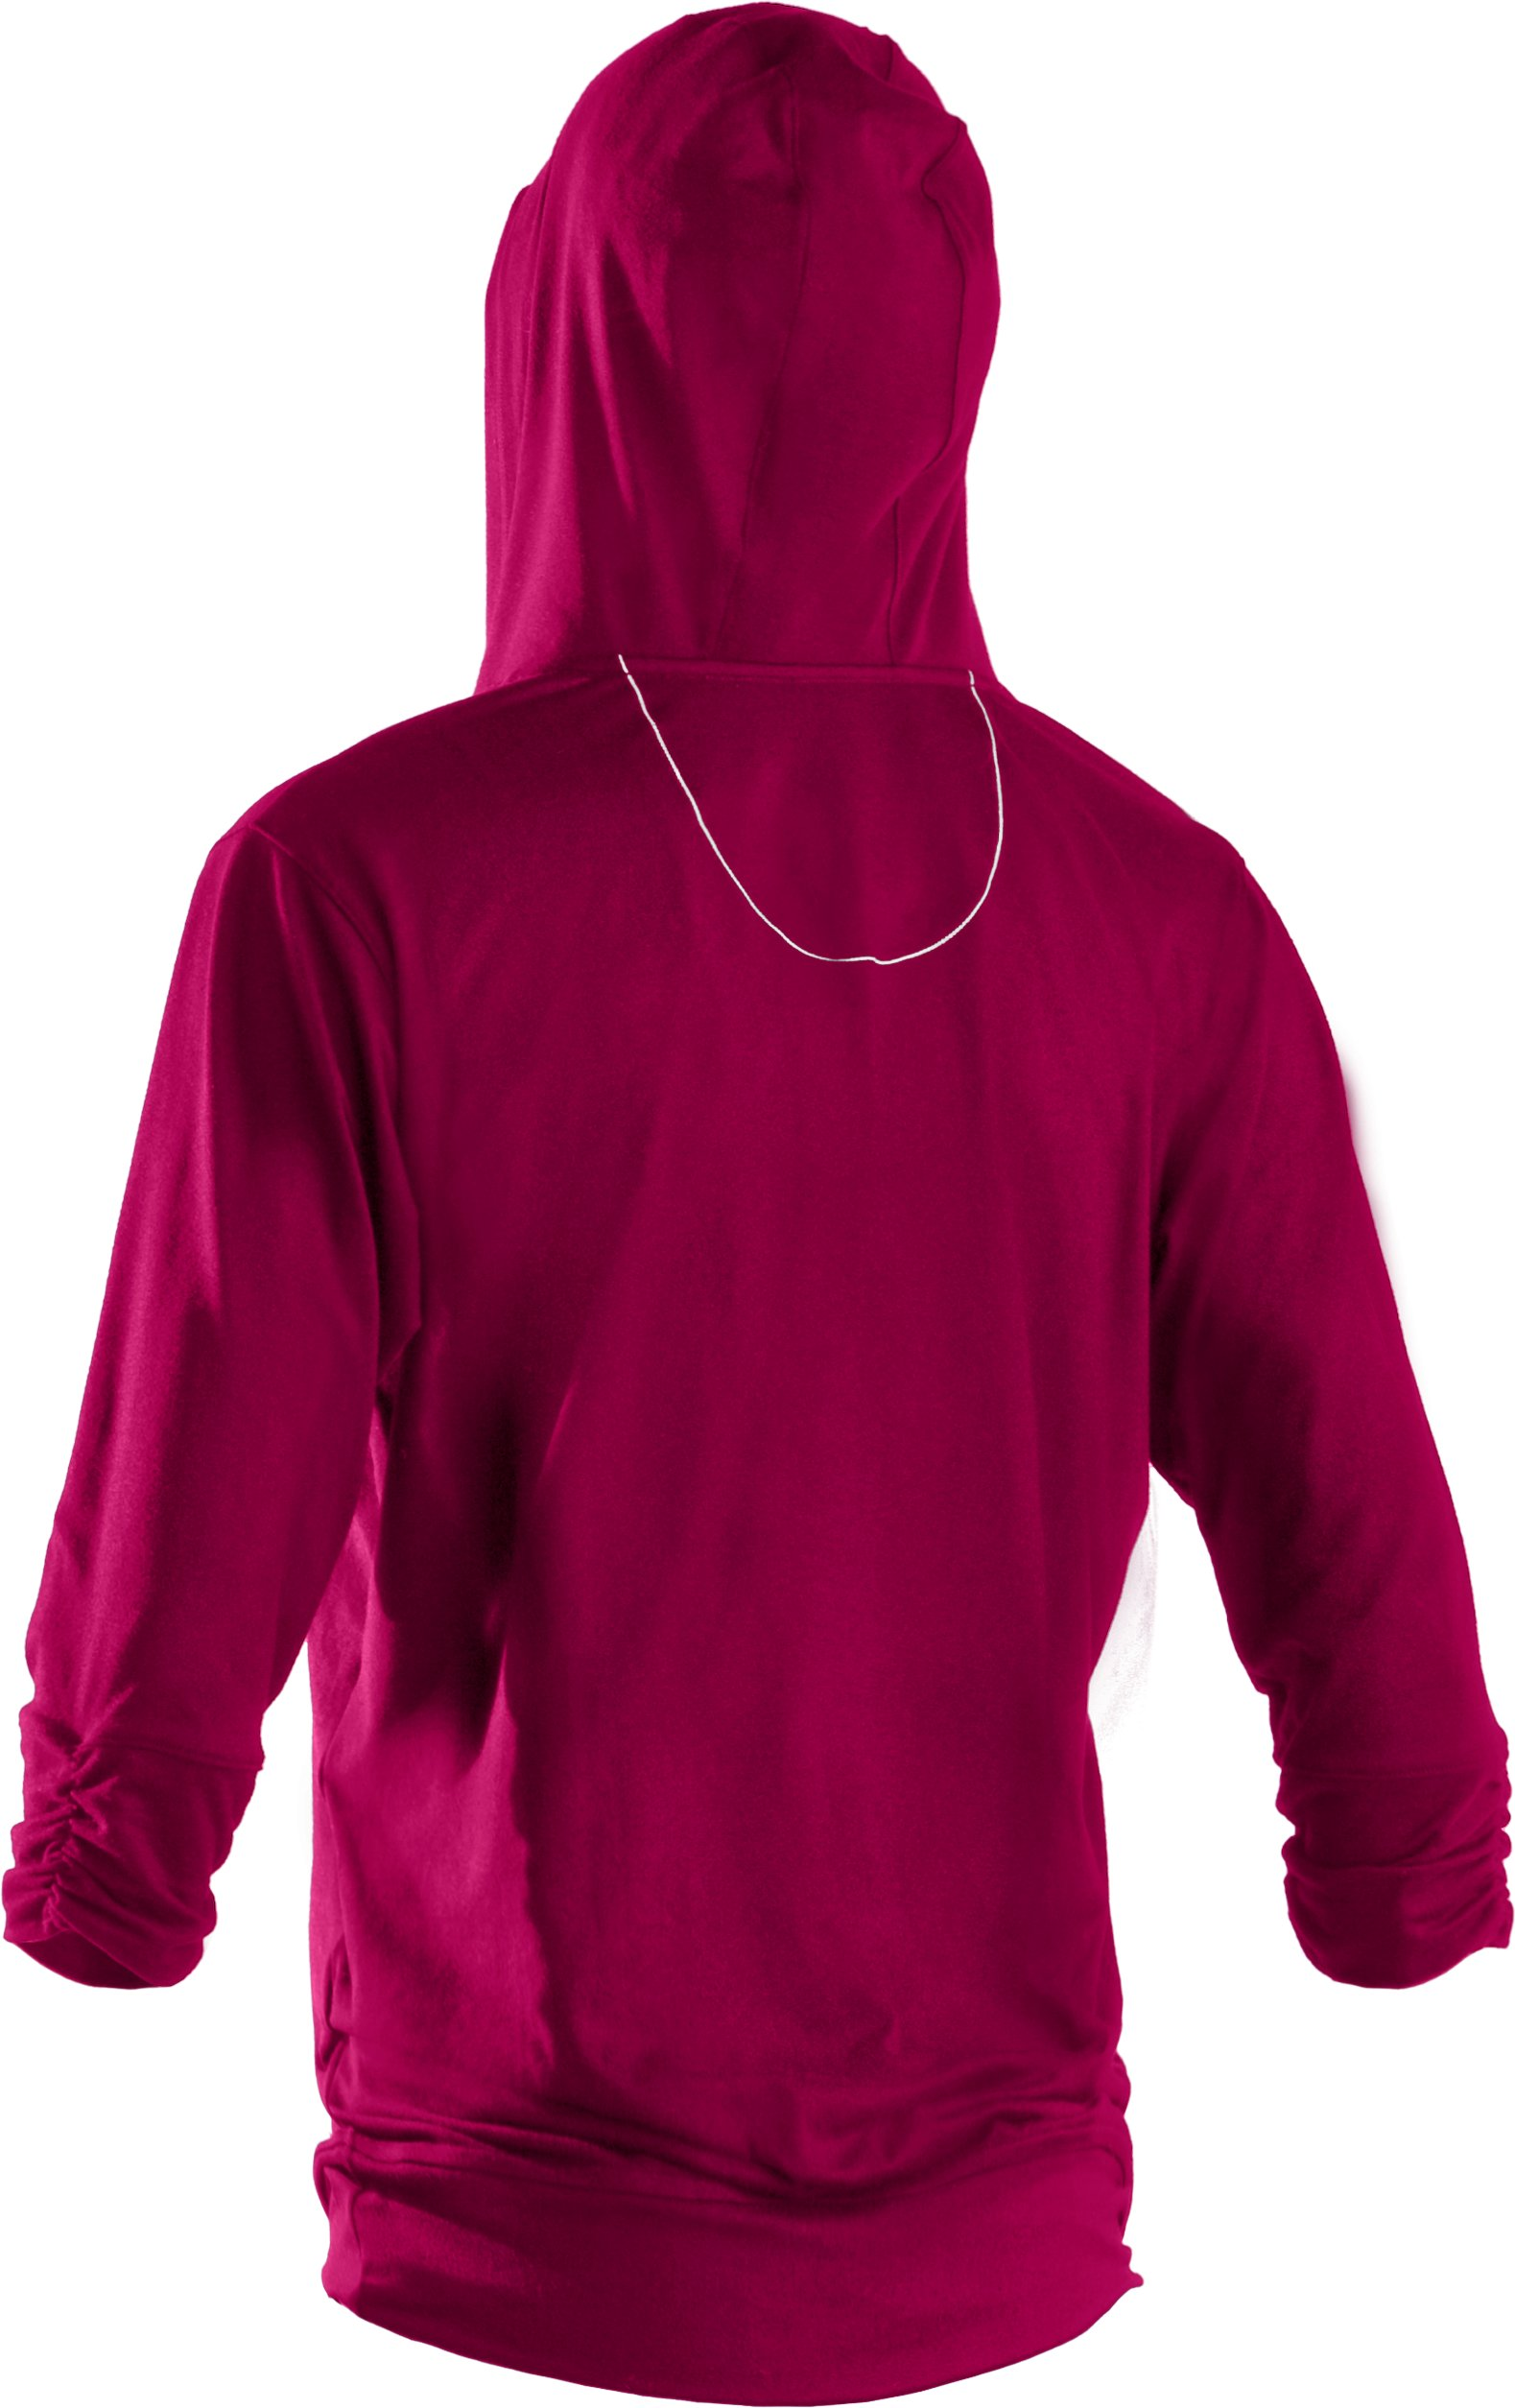 Women's Team Girl Season Opener Hoodie, Elderberry, undefined